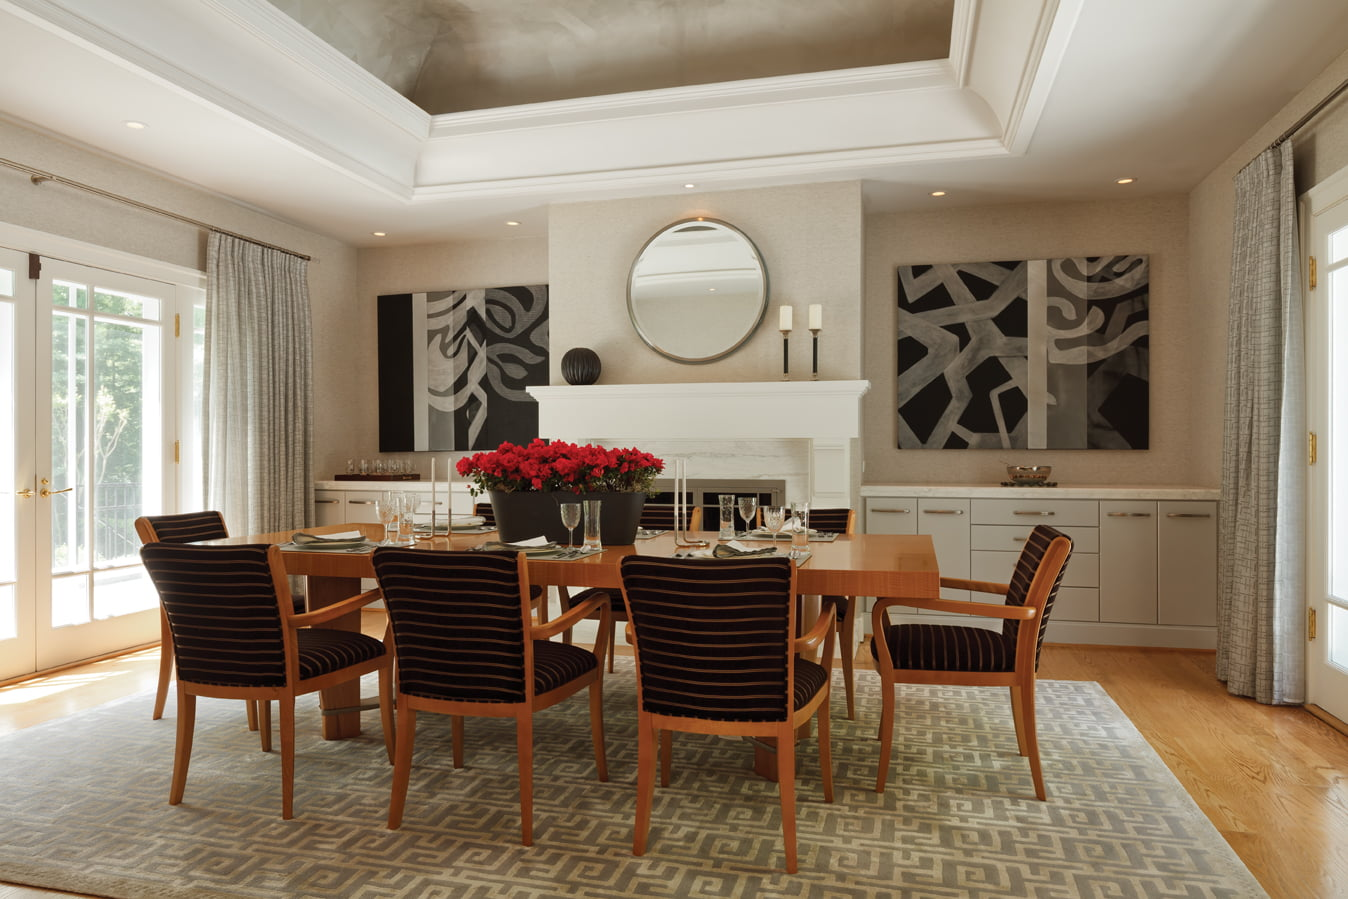 In the dining room, the custom table is by Evanson Studios and the chairs are by David Edward.